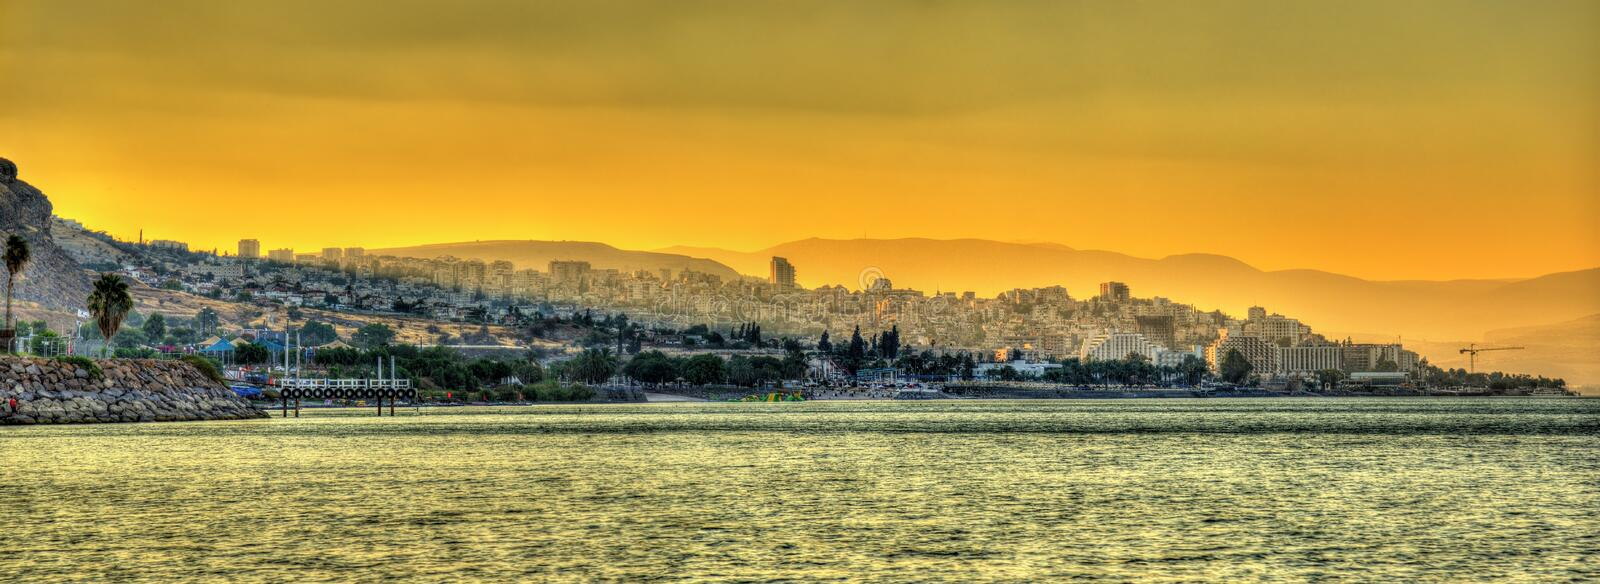 Tiberias city and the Sea of Galilee in Israel royalty free stock image